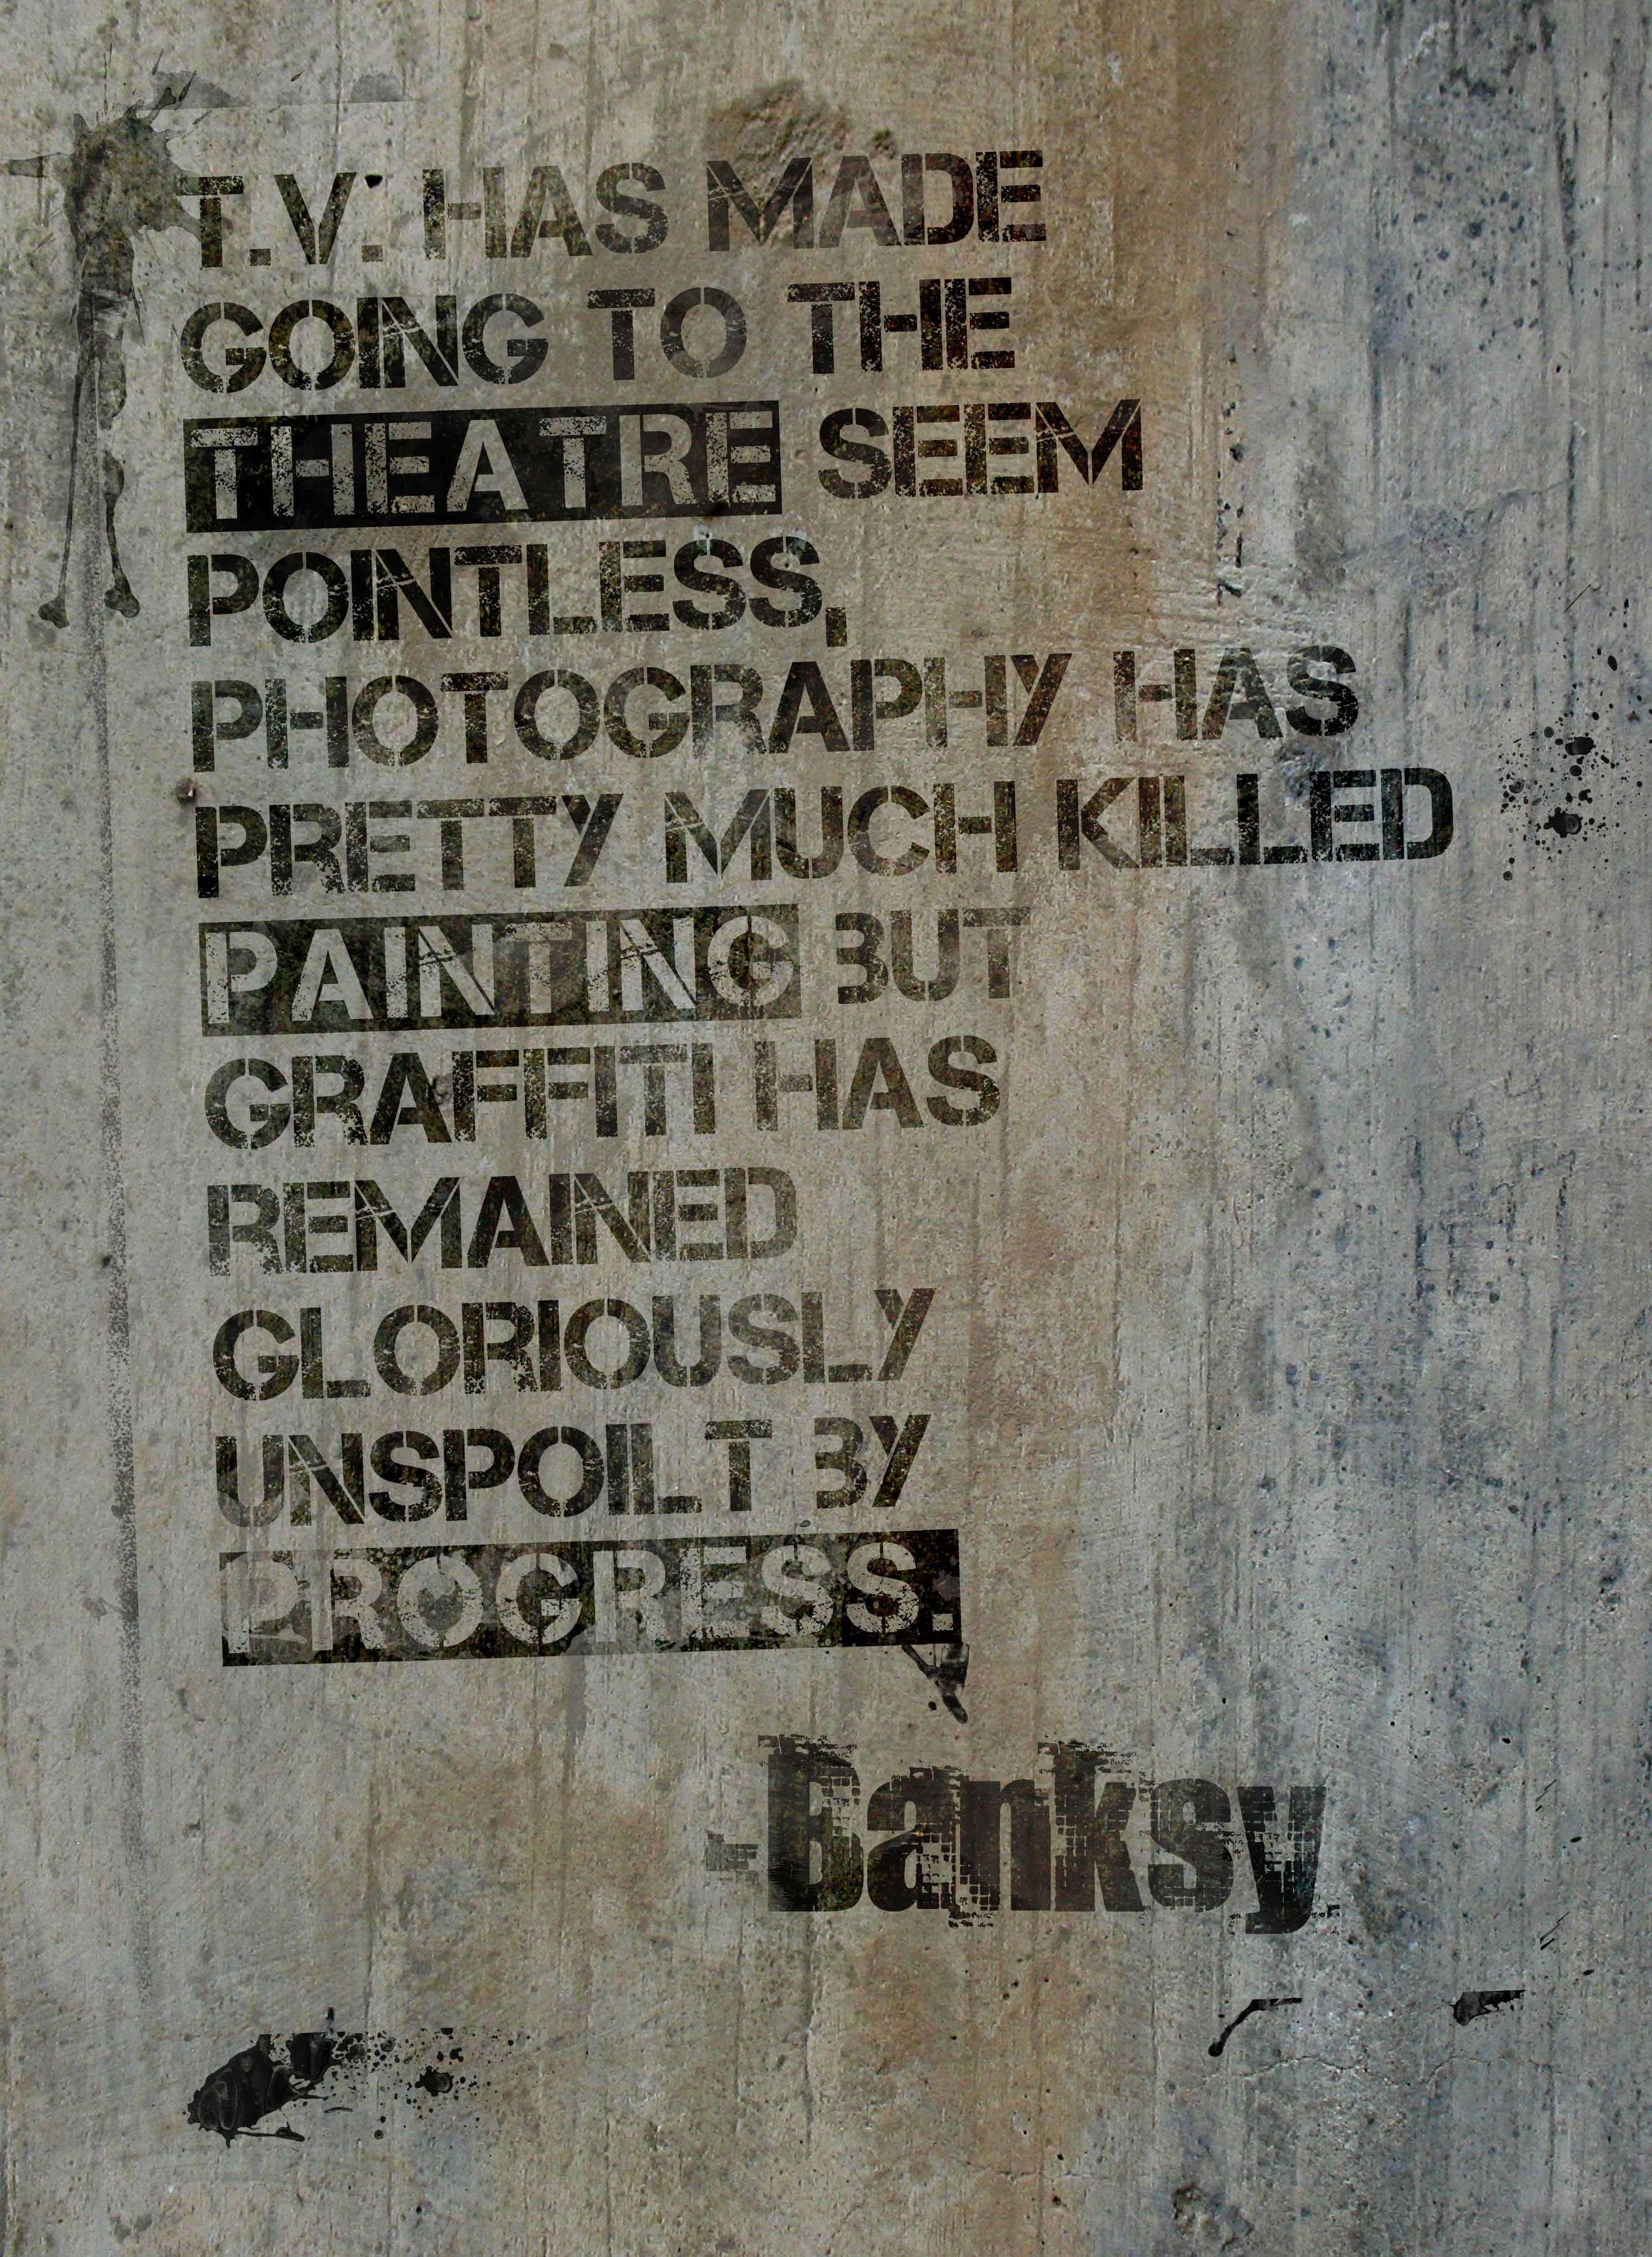 Banksy Quotes Tumblr images Banksy quotes, Street art